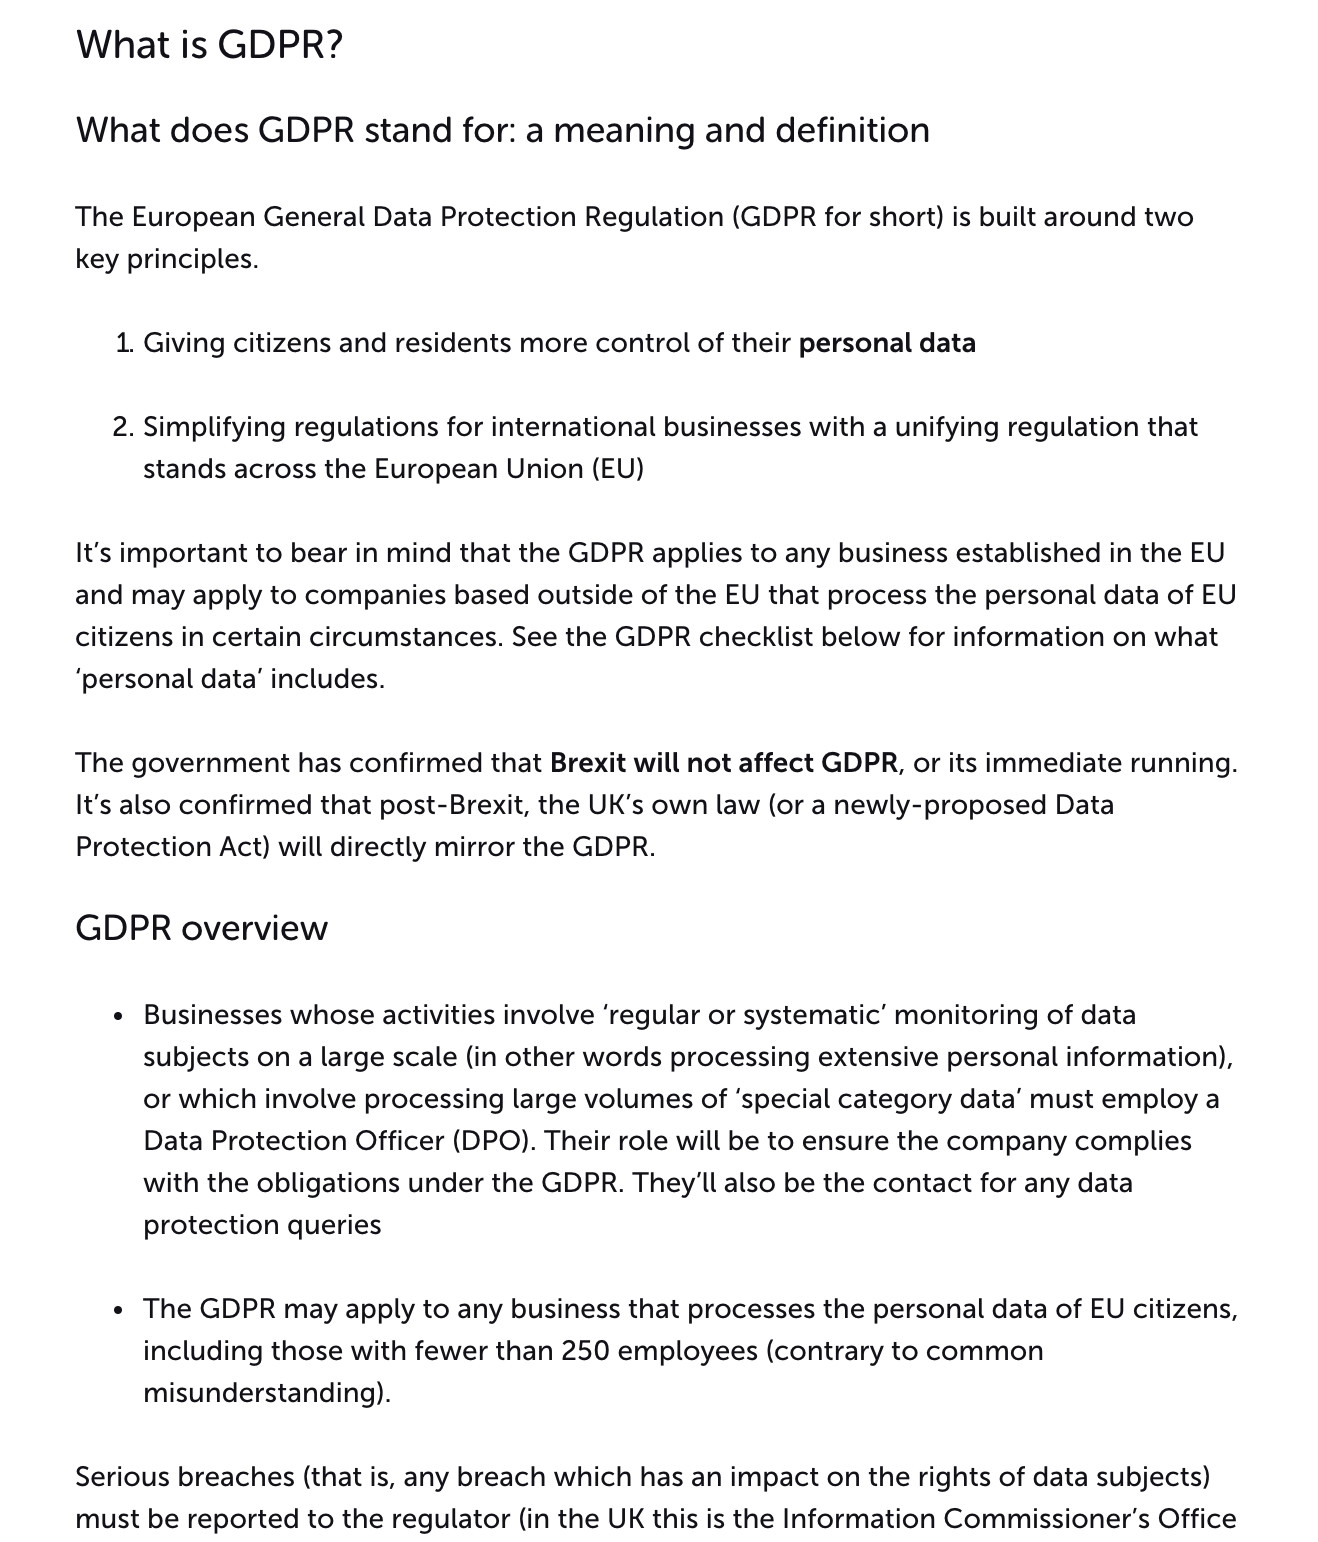 Review GDPR guidelines